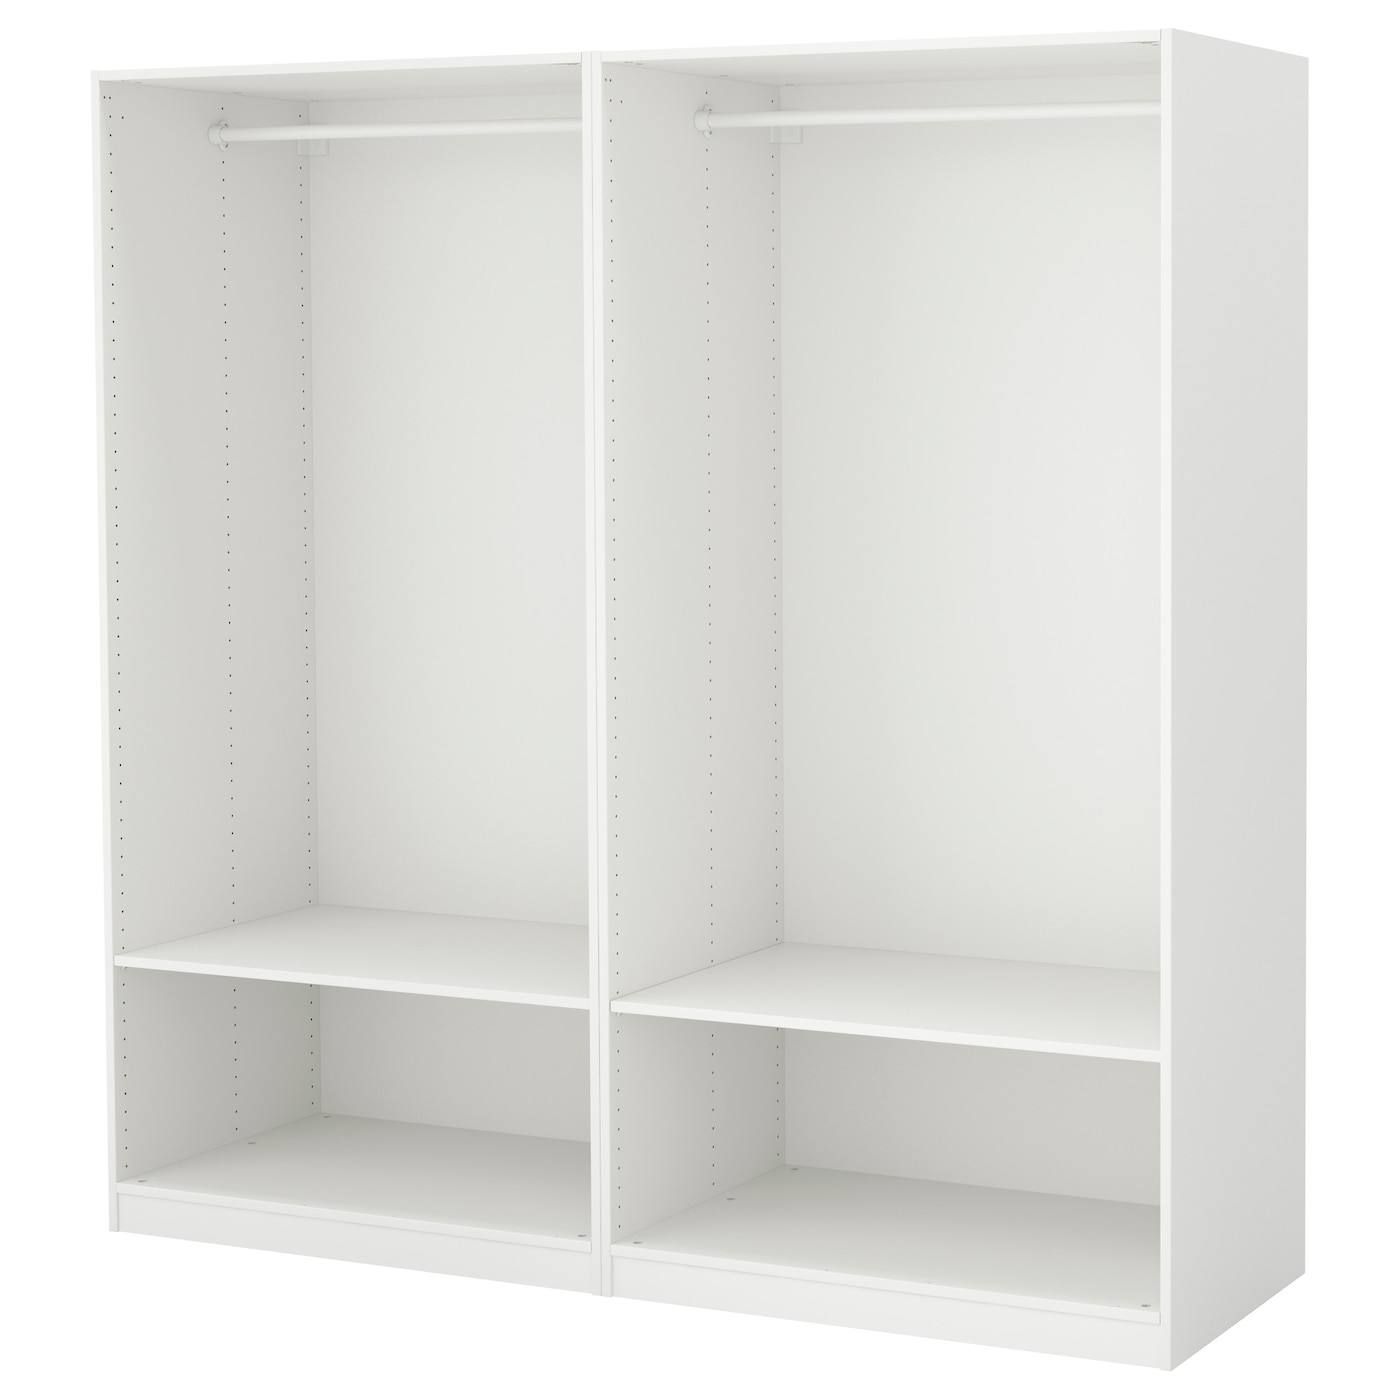 pax wardrobe white 200x58x201 cm ikea. Black Bedroom Furniture Sets. Home Design Ideas